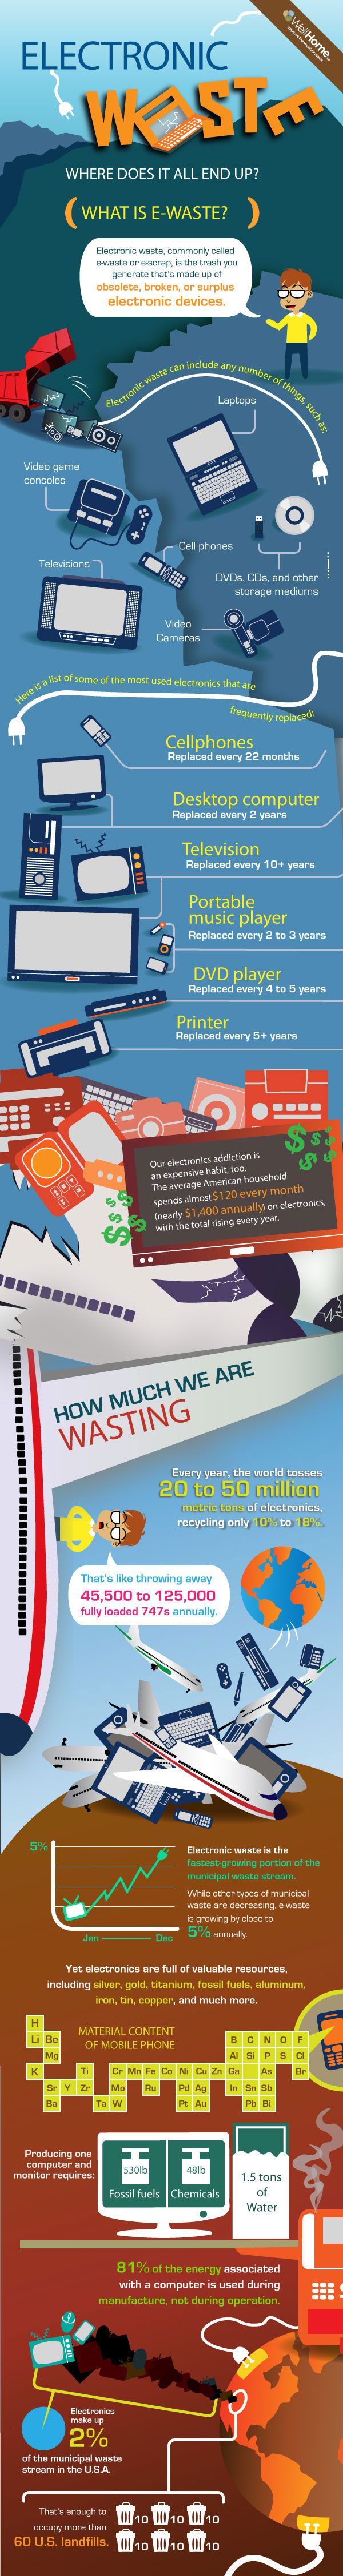 how-much-are-we-wasting